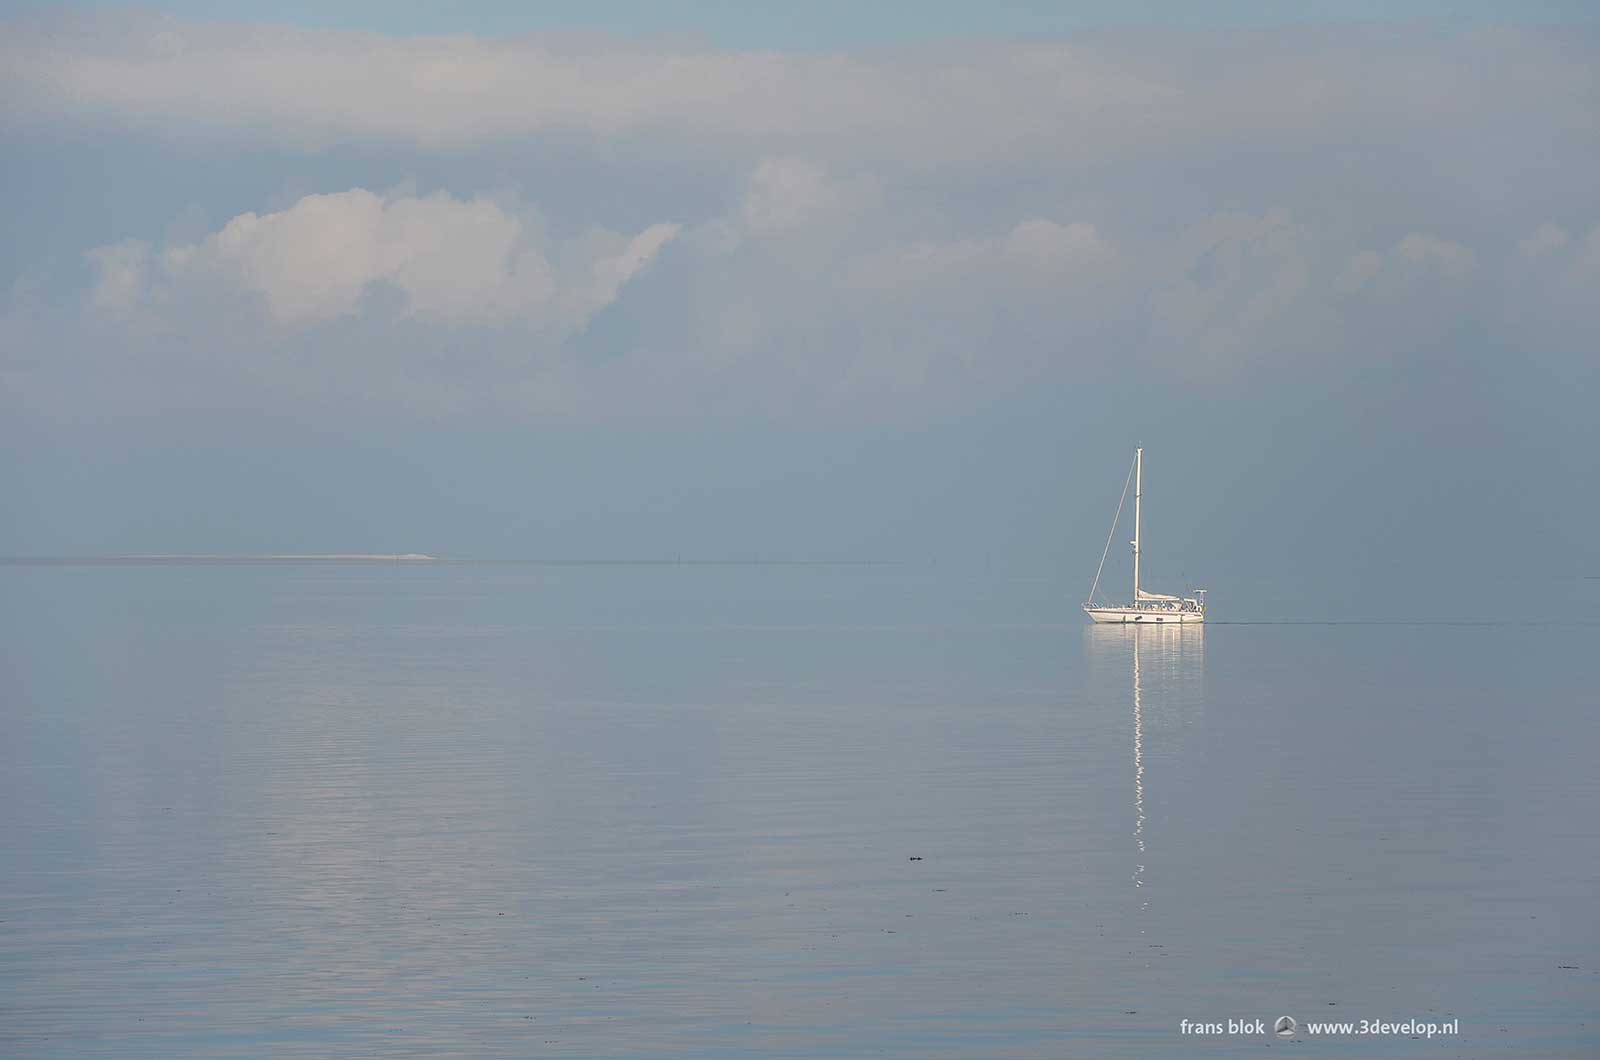 Sailing boat on an almost mirrorlike Eastern Scheldt with enormous clouds above the horizon.